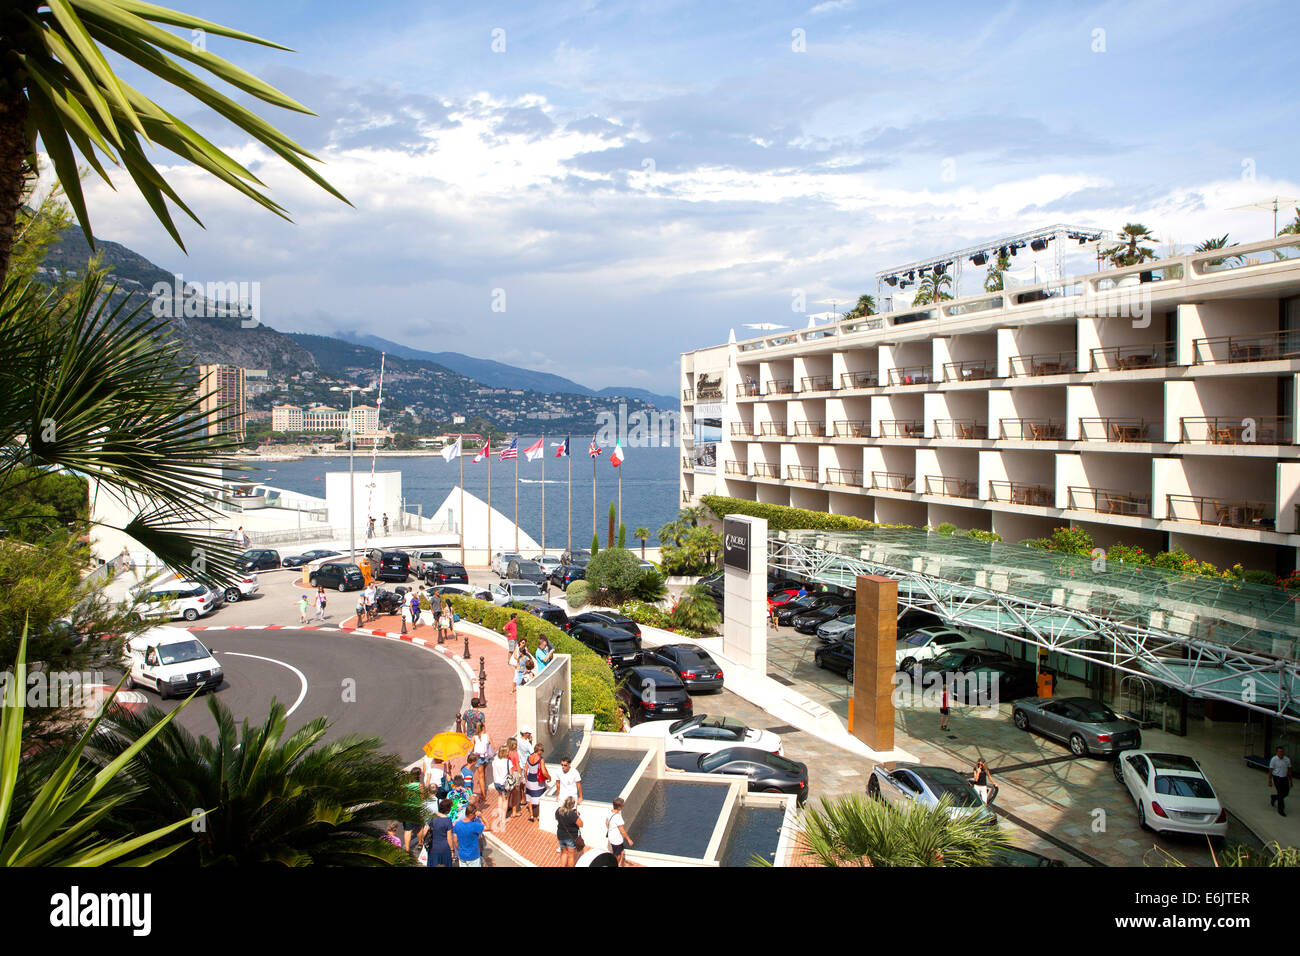 Fairmont Hotel Hairpin Monte Carlo An Area Of The